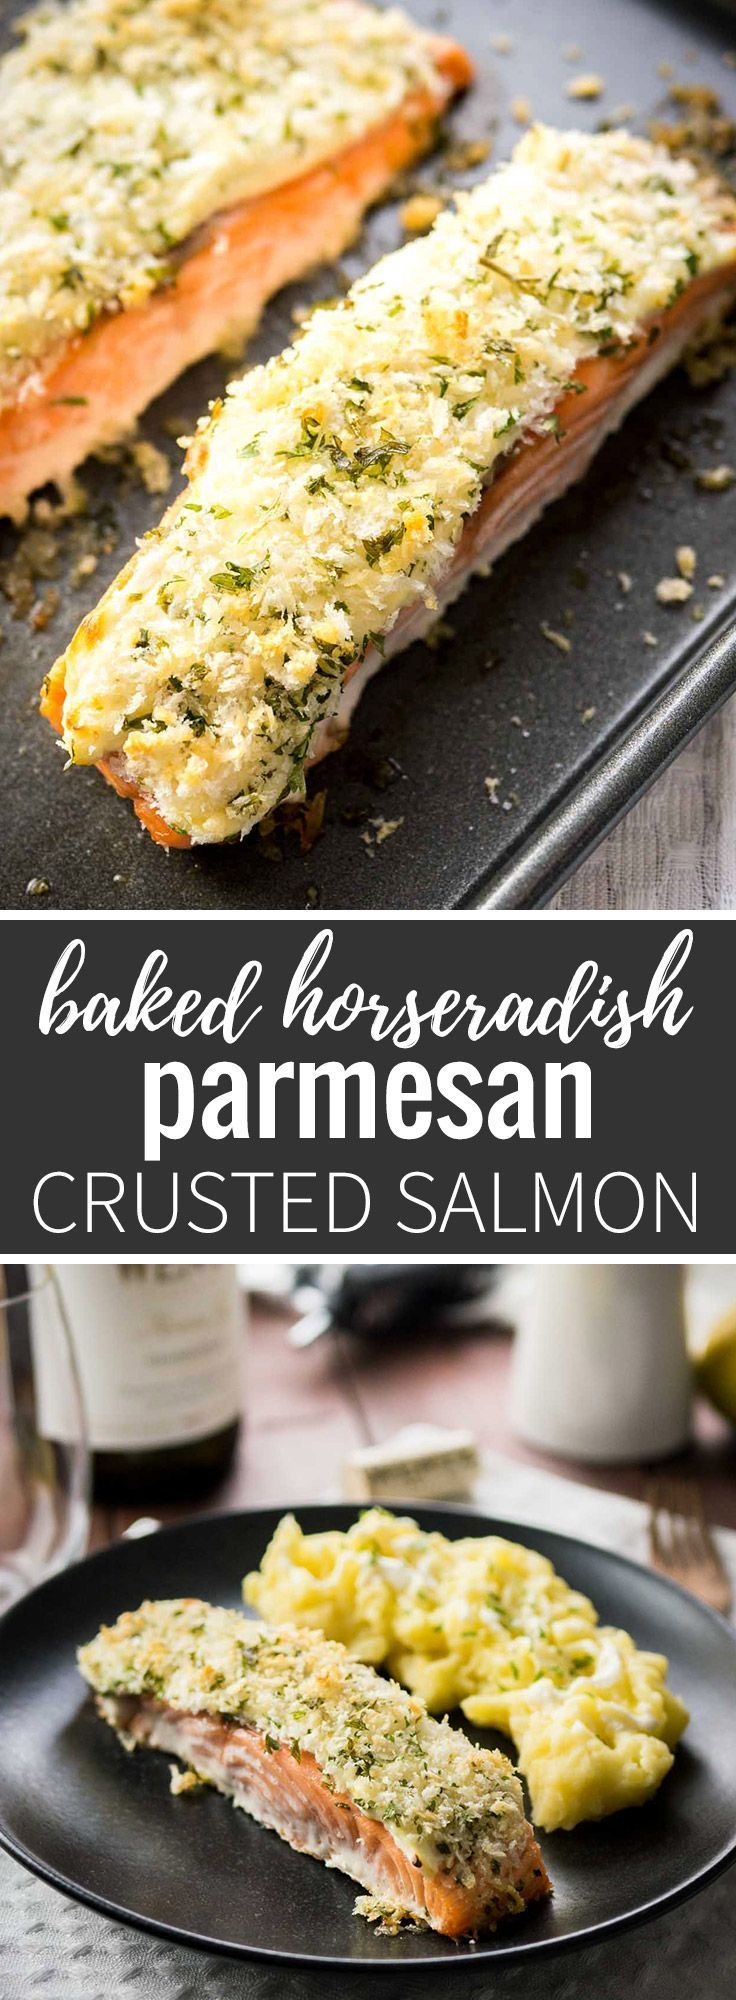 This Horseradish Parmesan crusted Salmon is baked in the oven and only takes 20 minutes to make. A dinner fancy enough for guests but also easy enough for weeknights!